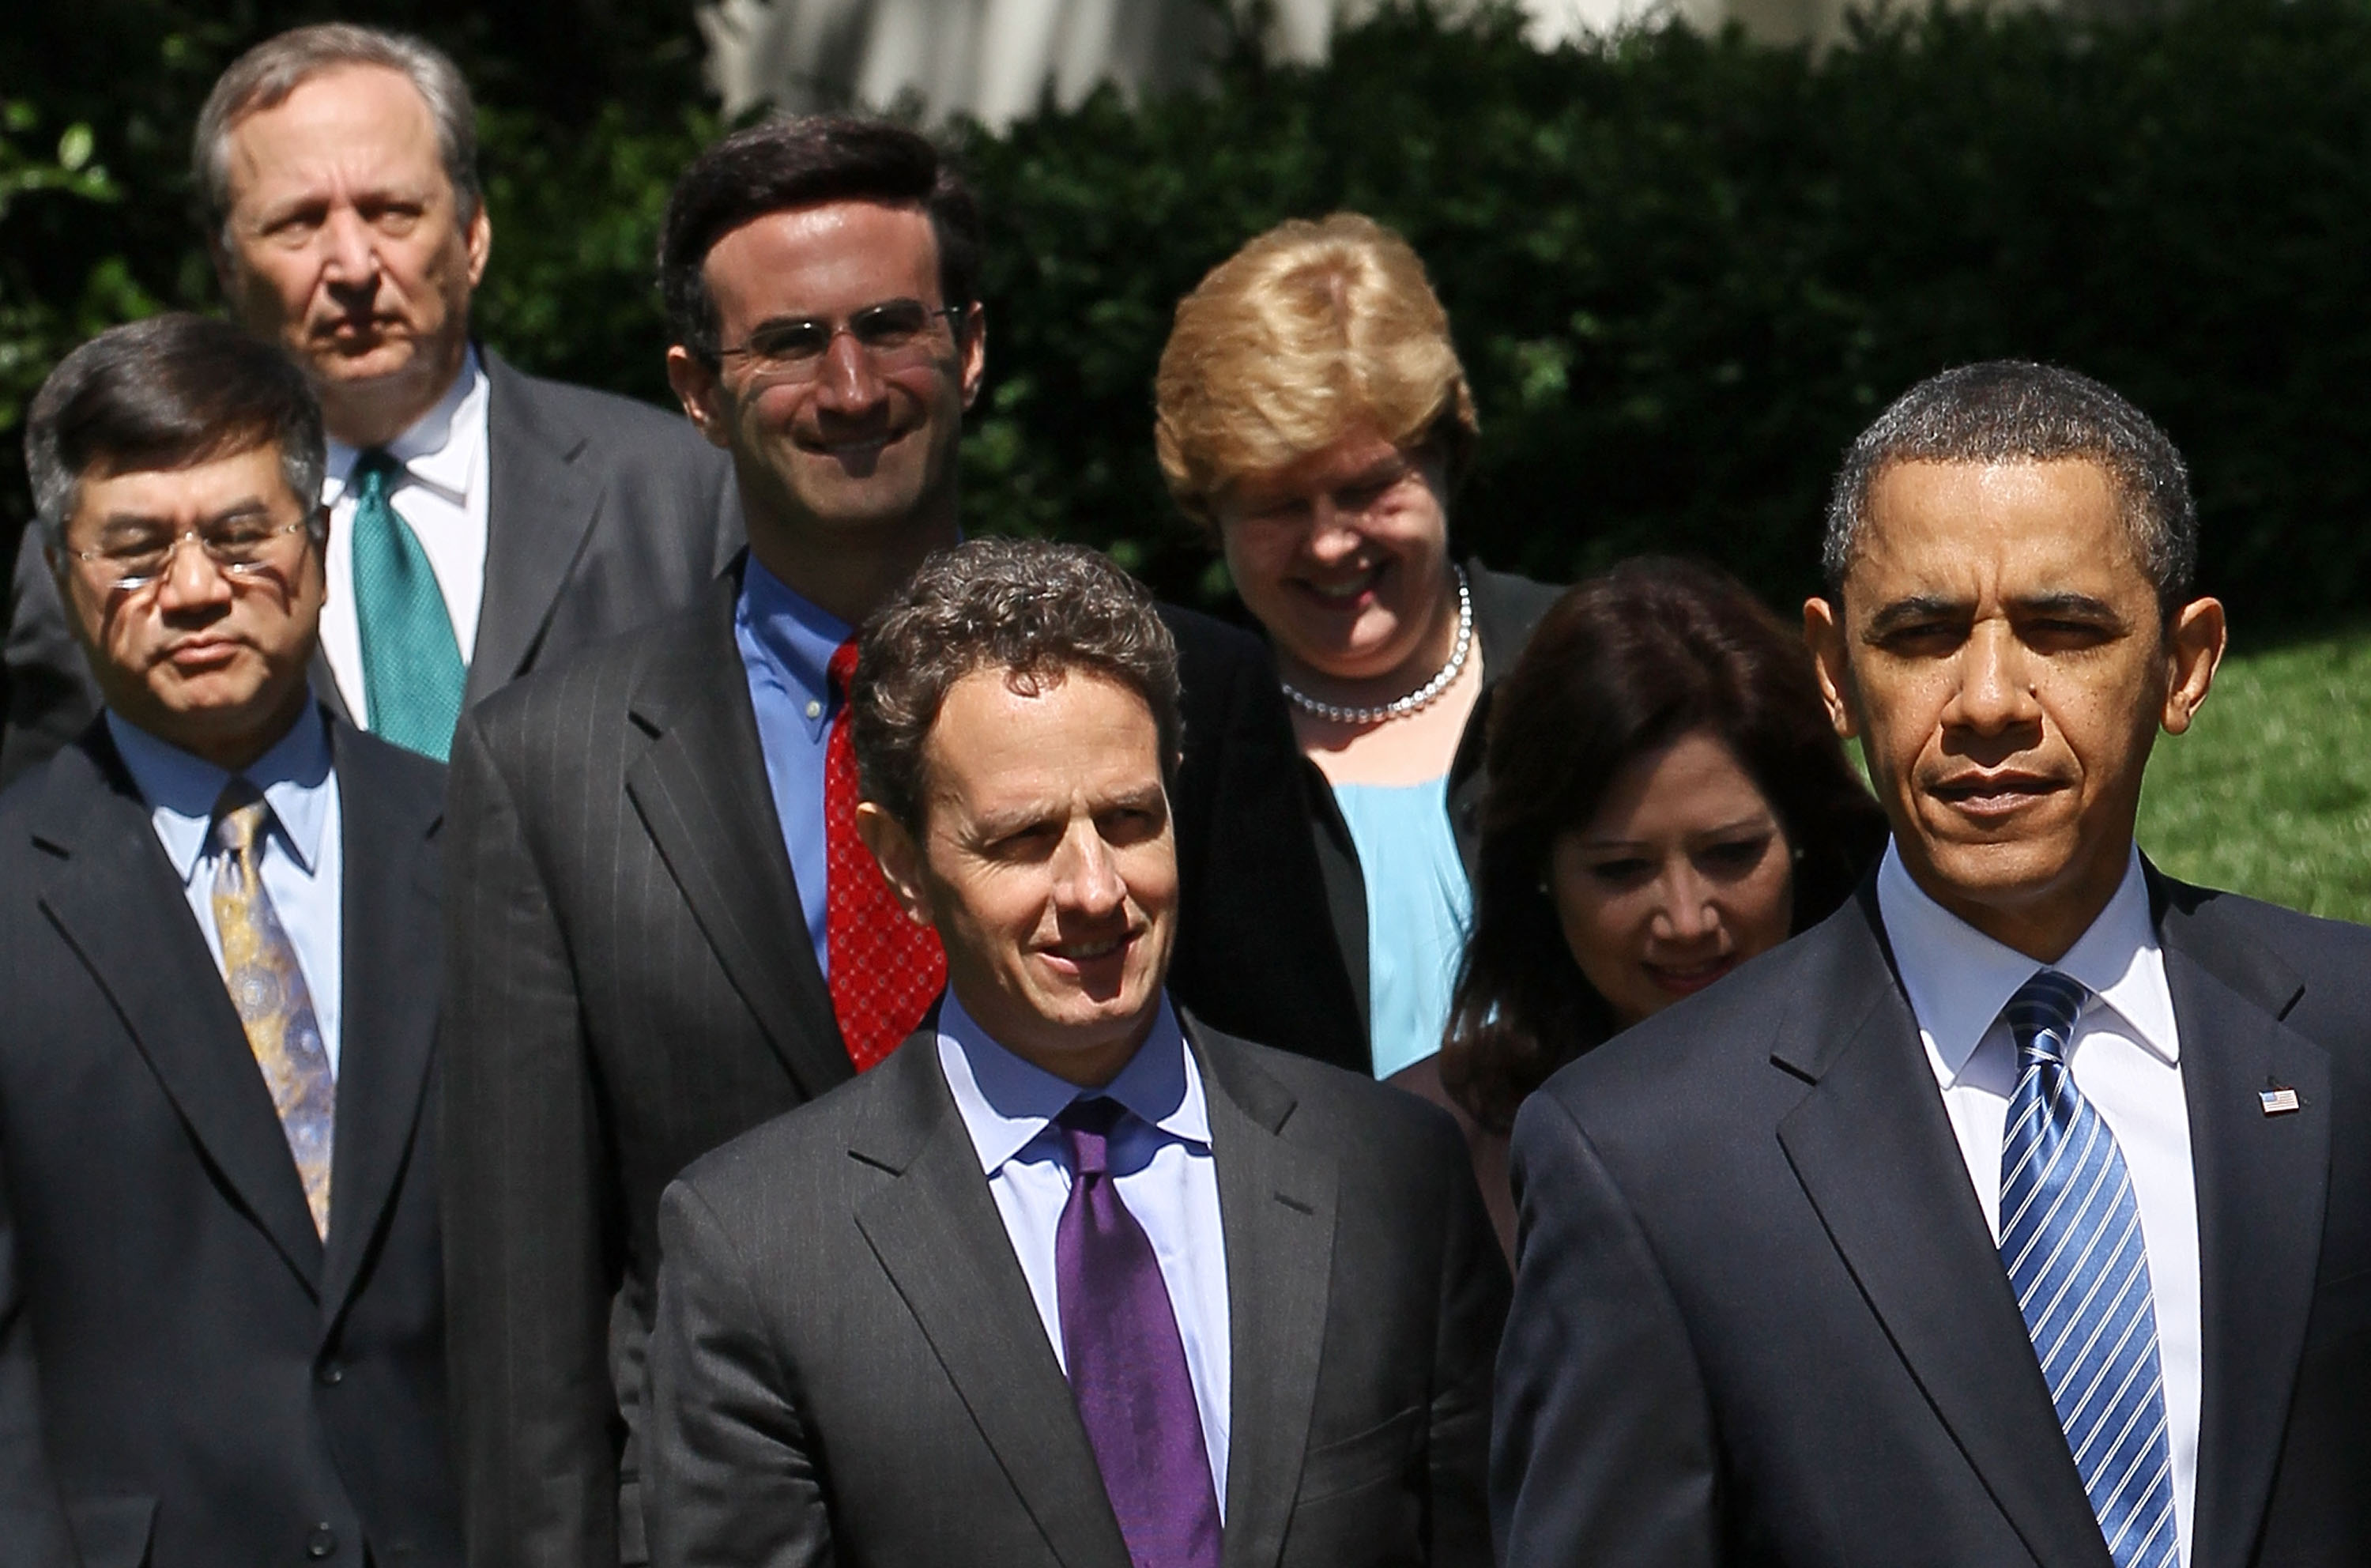 A 2010 picture of President Obama walking with his six-person economic team behind him.